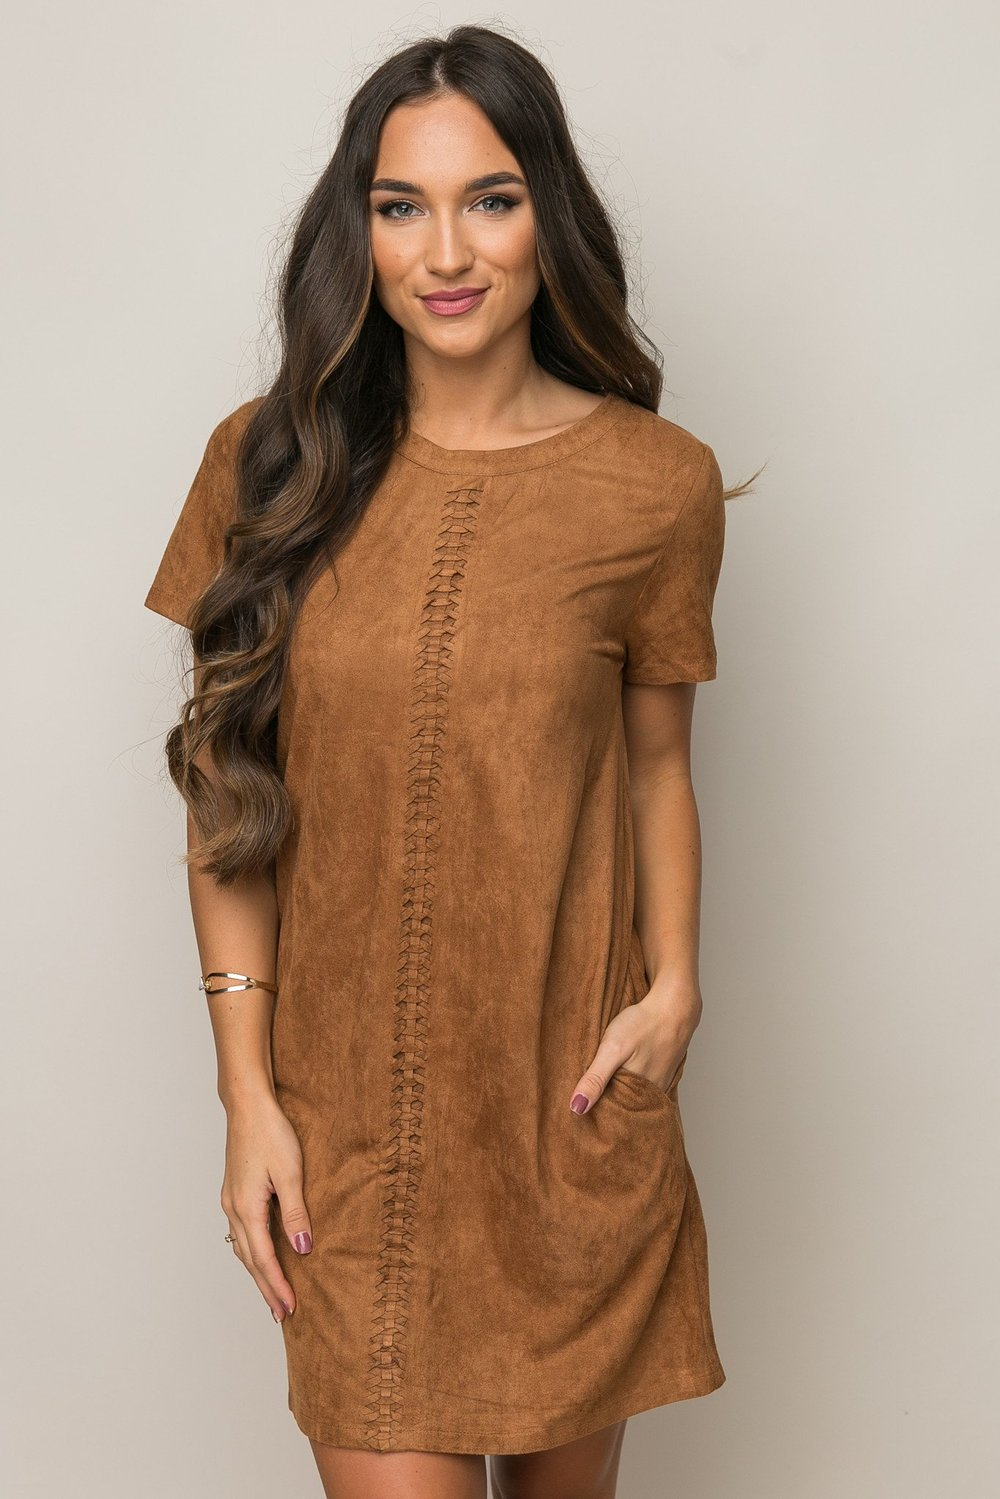 tan_camel_suede_shortsleeve_shift_dress-3_2048x2048.jpg